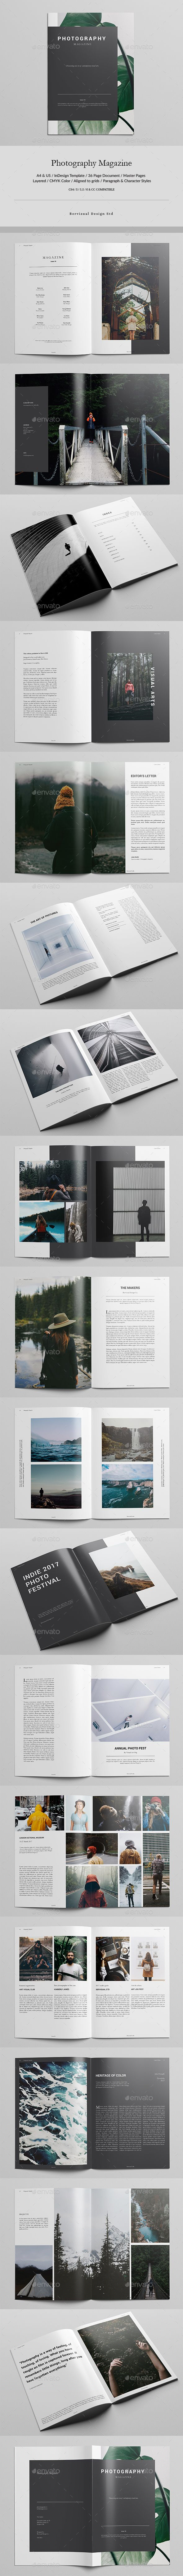 Photography Magazine Template InDesign INDD